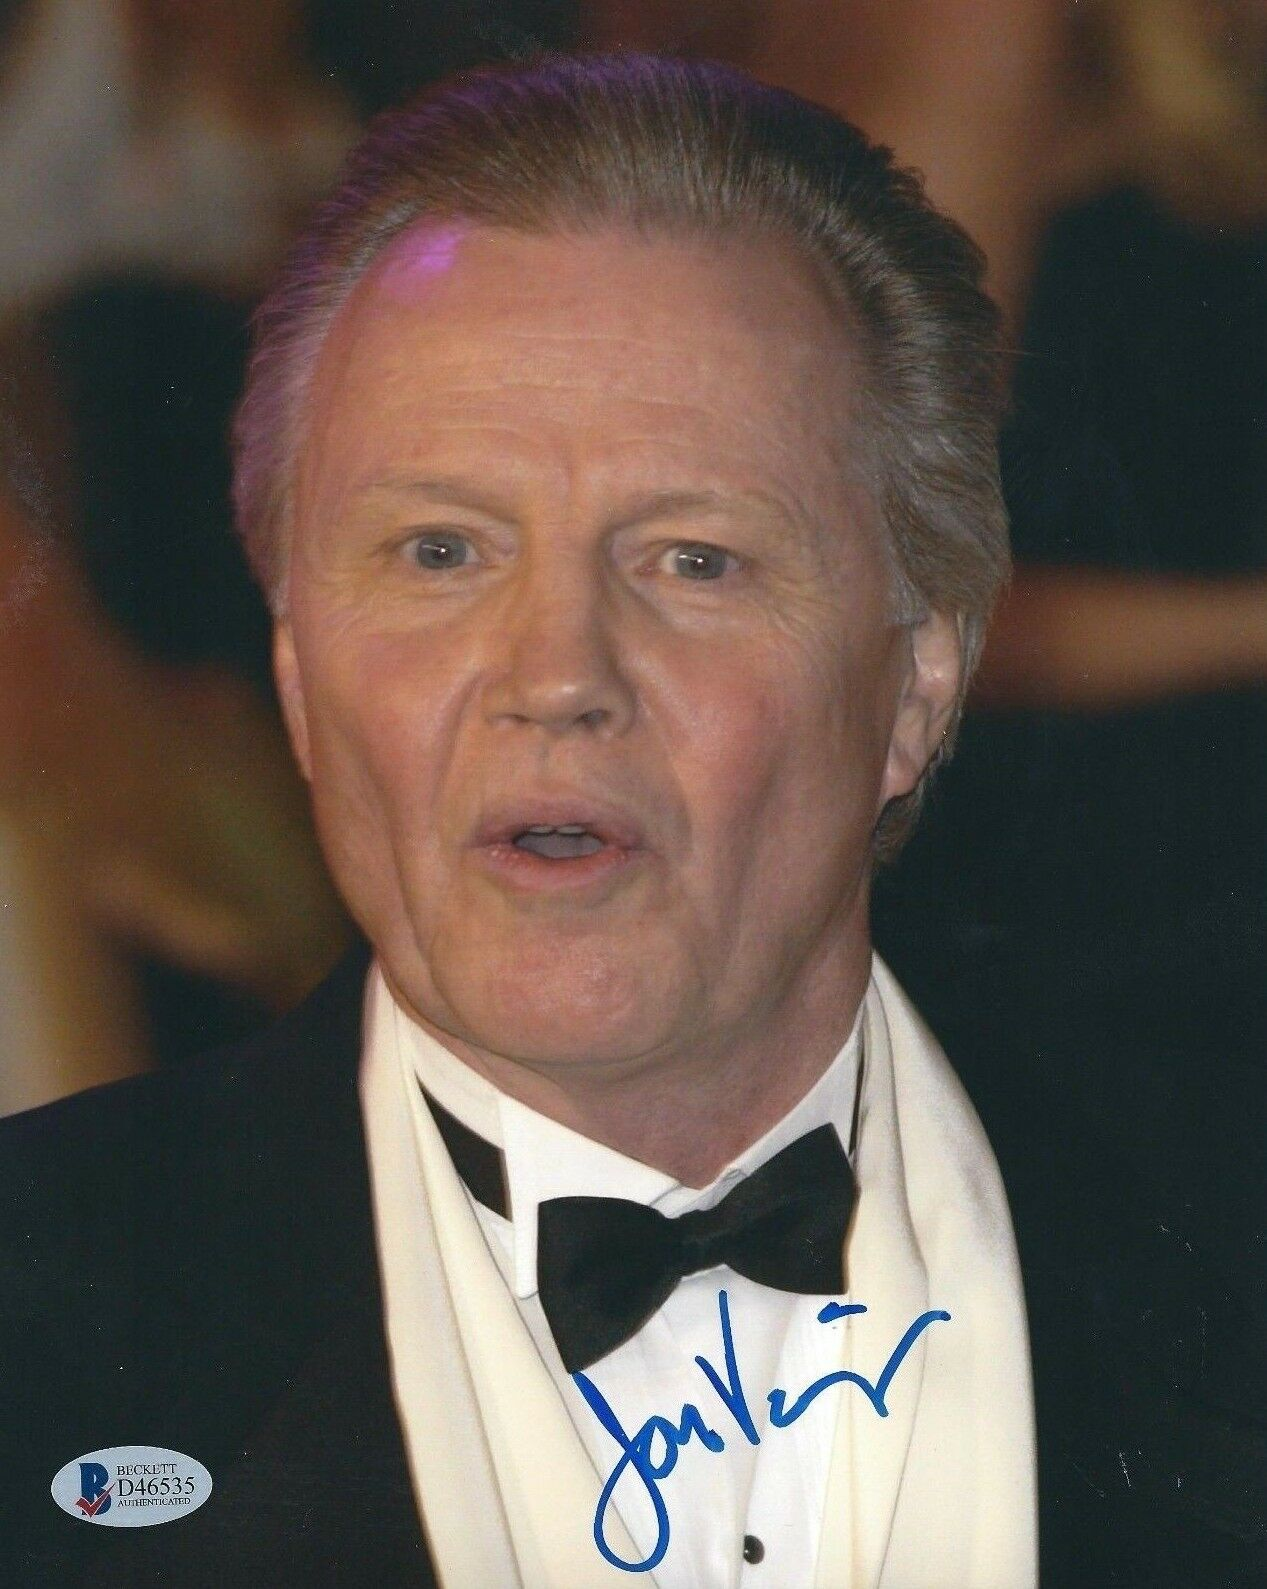 Jon Voight Signed 8x10 Photo Beckett BAS D46535